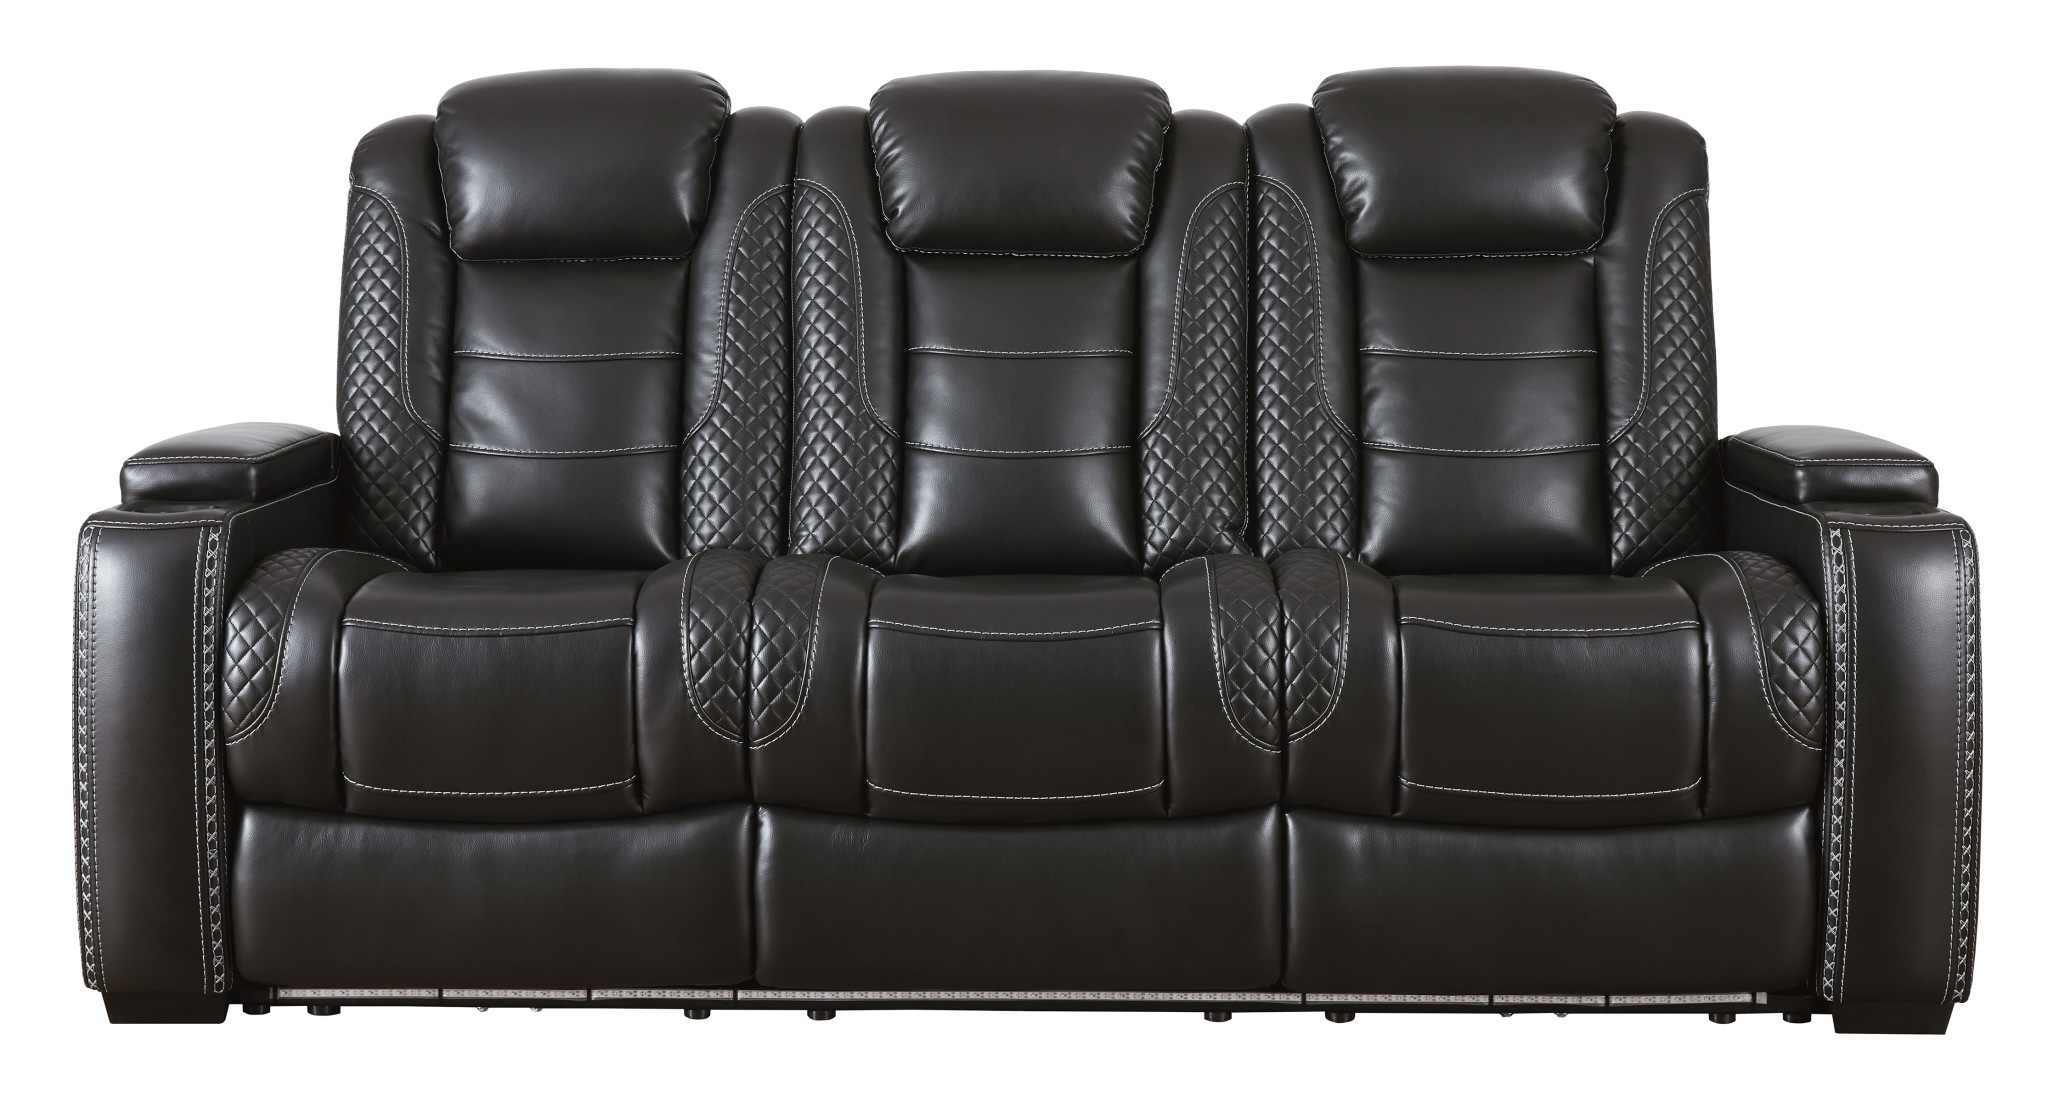 Signature Design Party Time Power Reclining Sofa w/ Adjustable Headrest, Party Time, Midnight color, 3700315